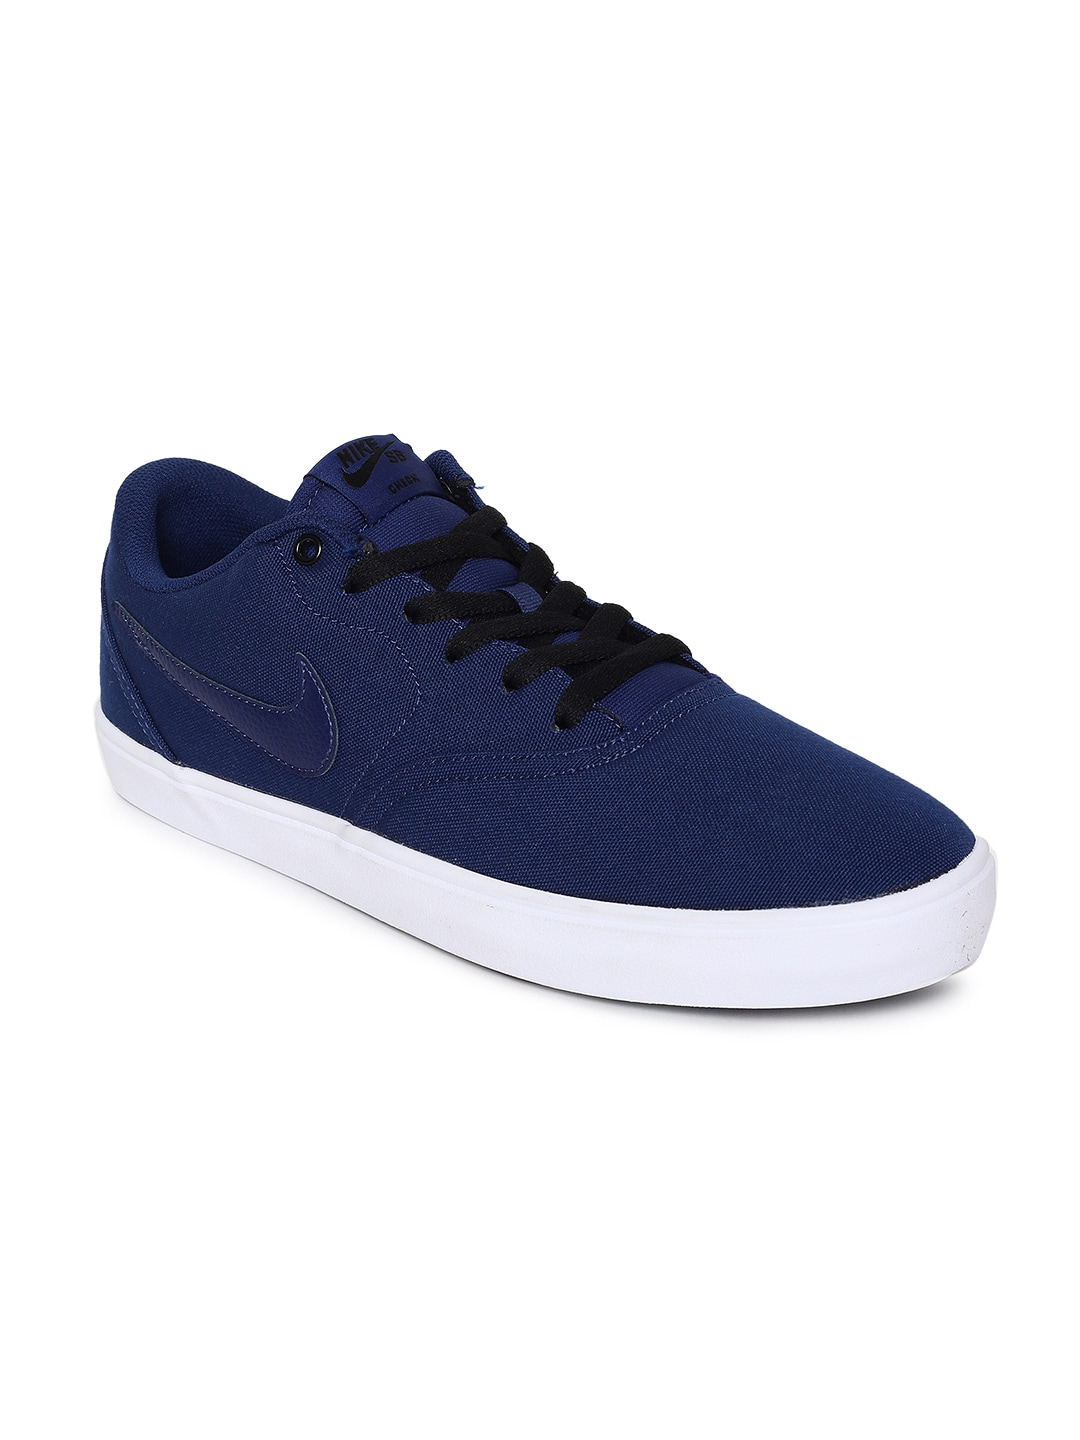 90b969350e8 Nike Sb Shoes - Buy Nike Sb Shoes online in India